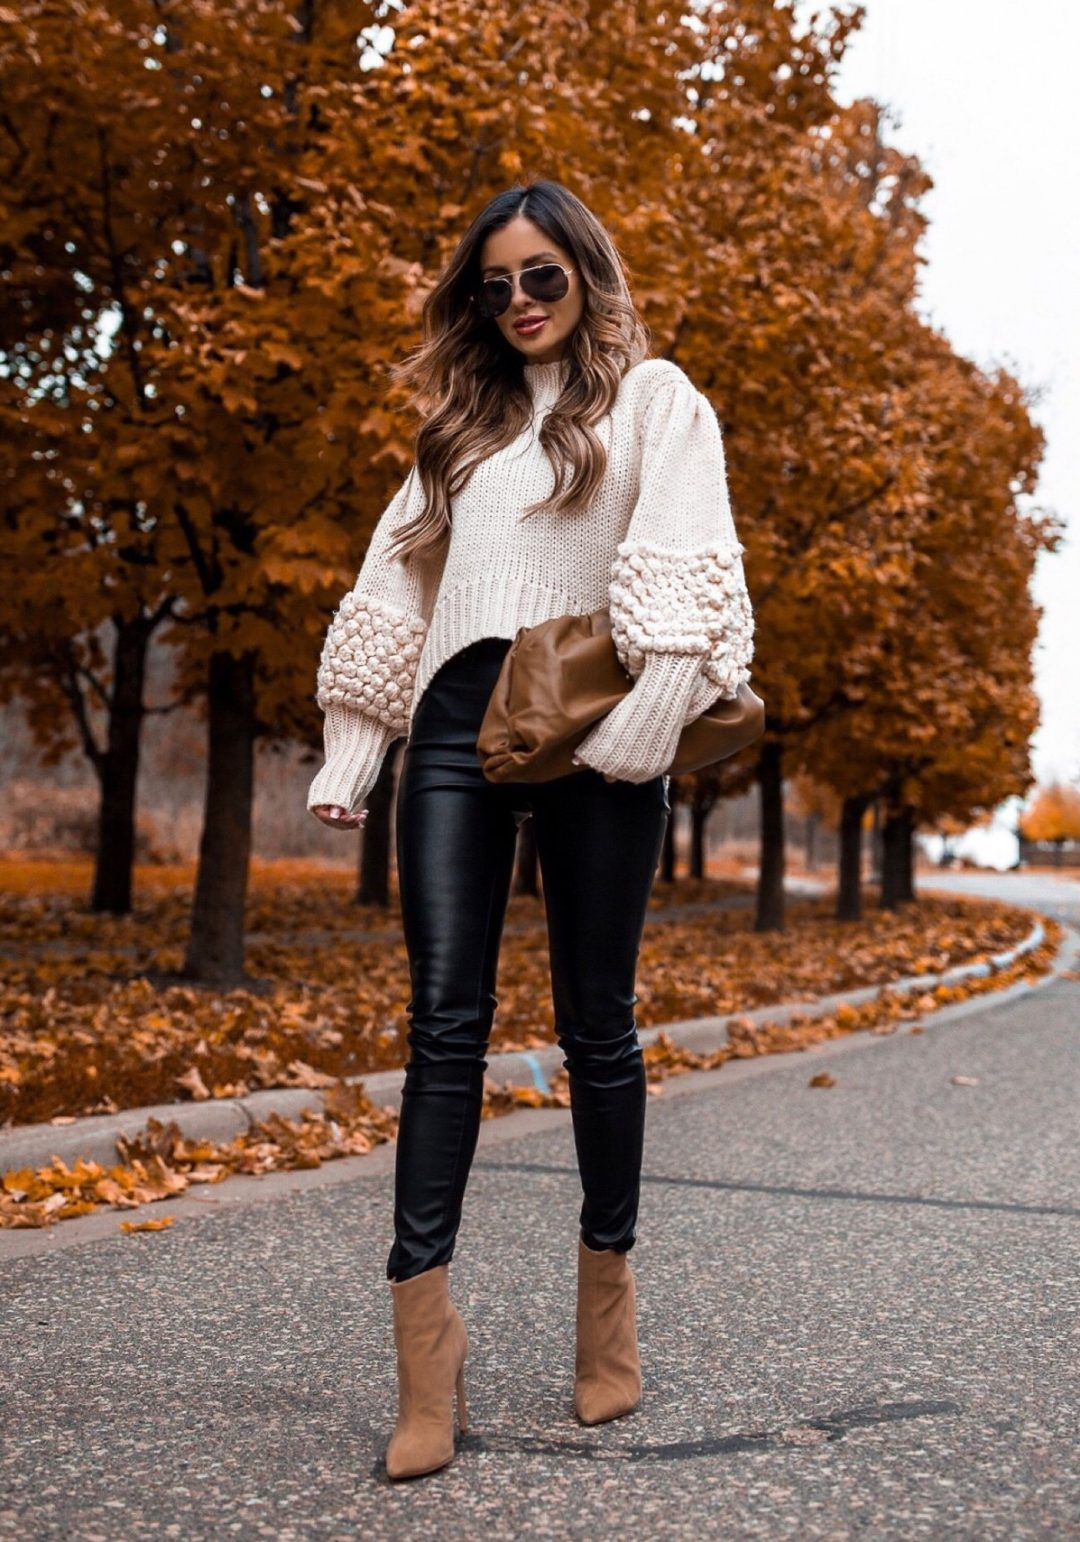 Cute sweater outfits with black leggings